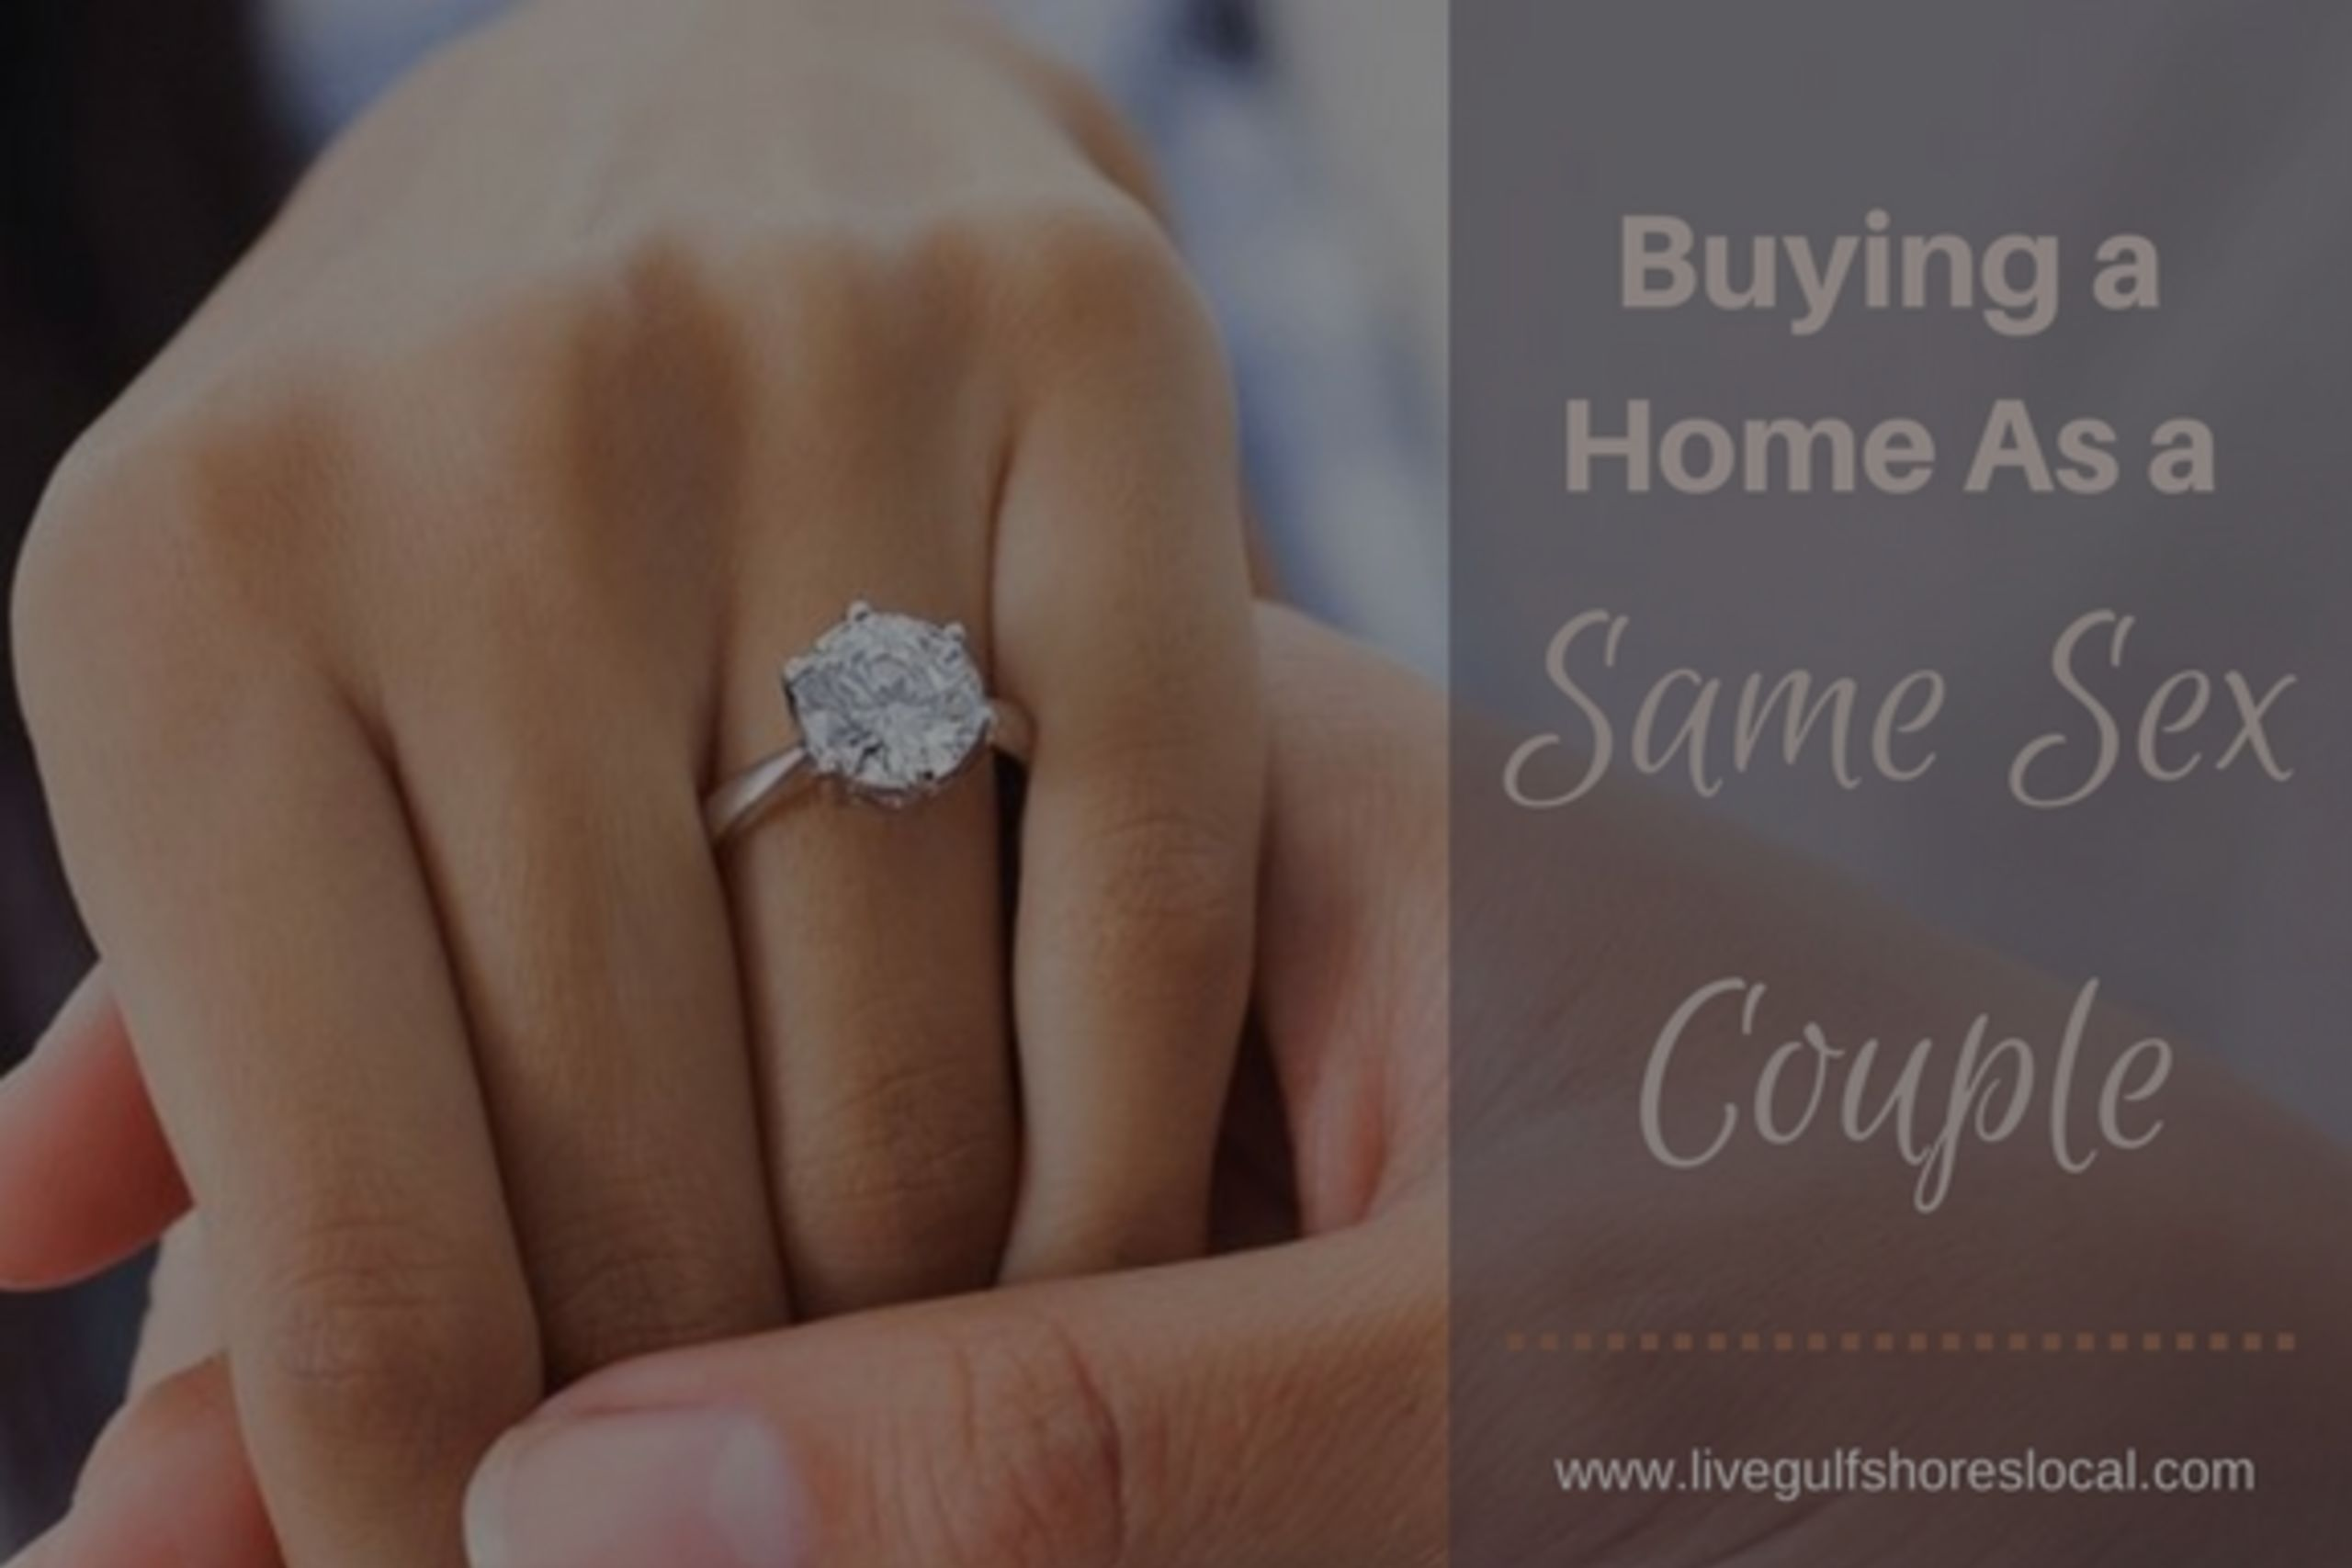 Buying a Home As a Same Sex Couple